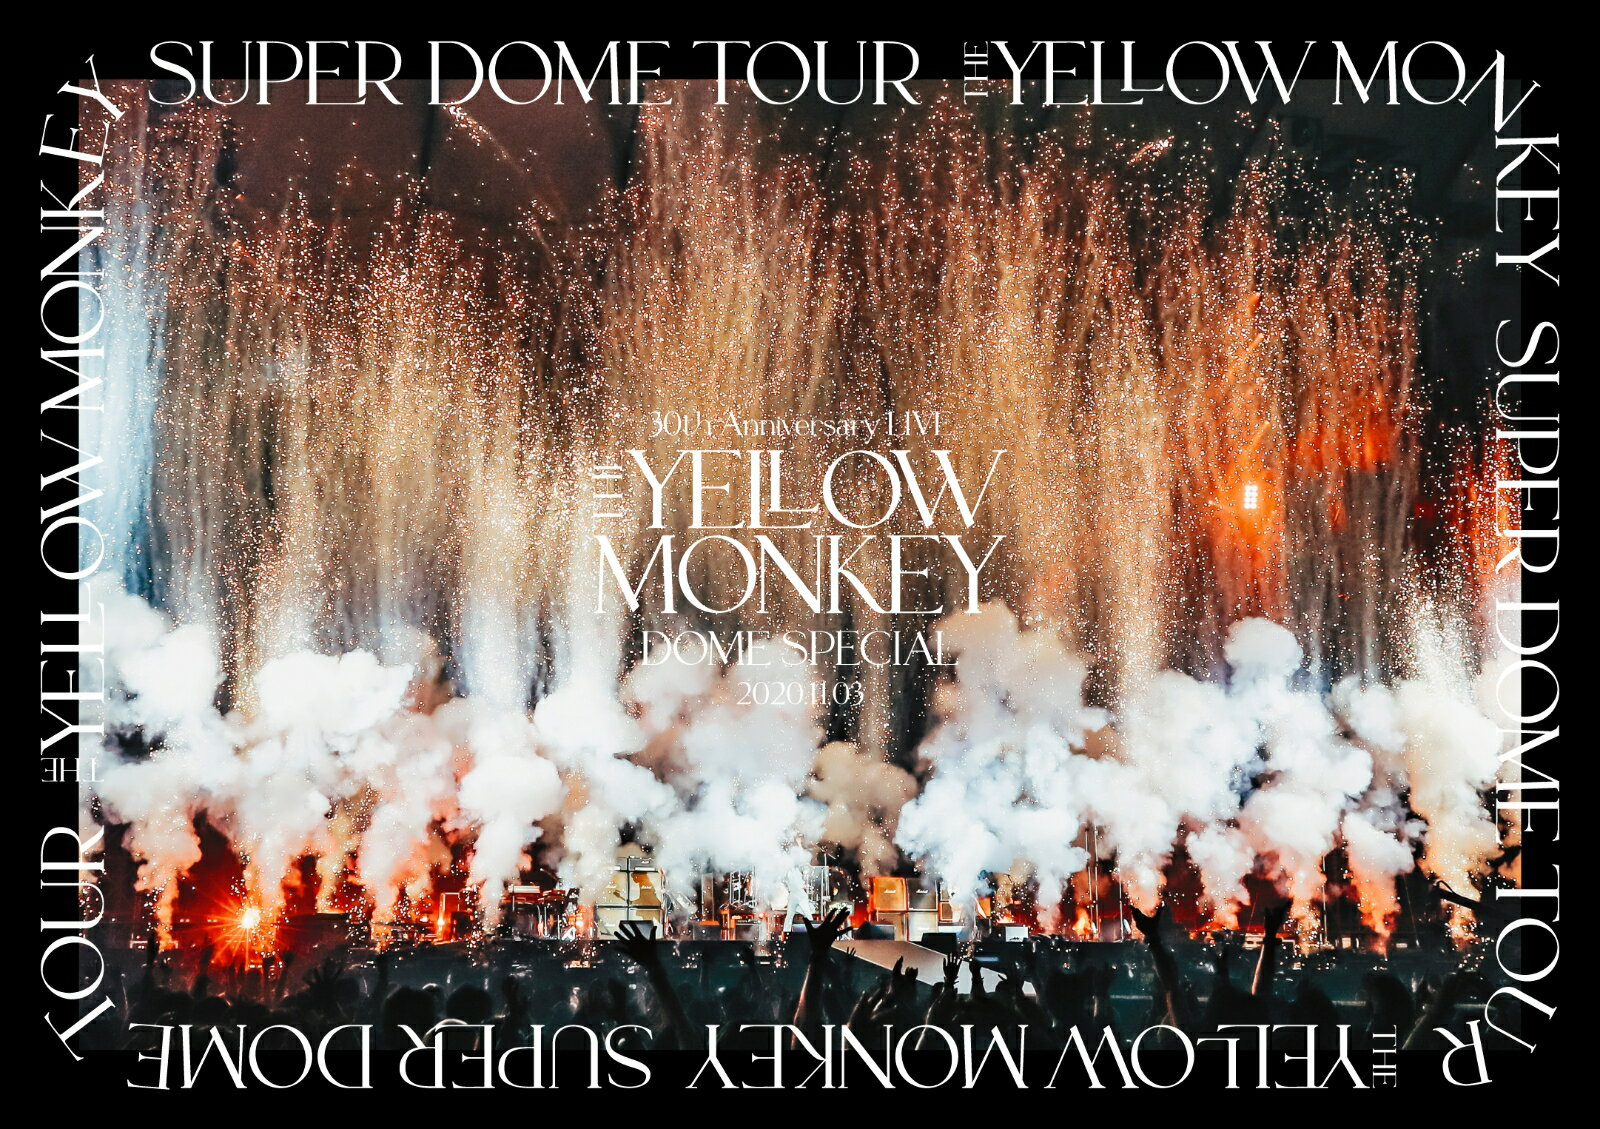 THE YELLOW MONKEY 30th Anniversary LIVE -DOME SPECIAL- 2020.11.3【Blu-ray】画像